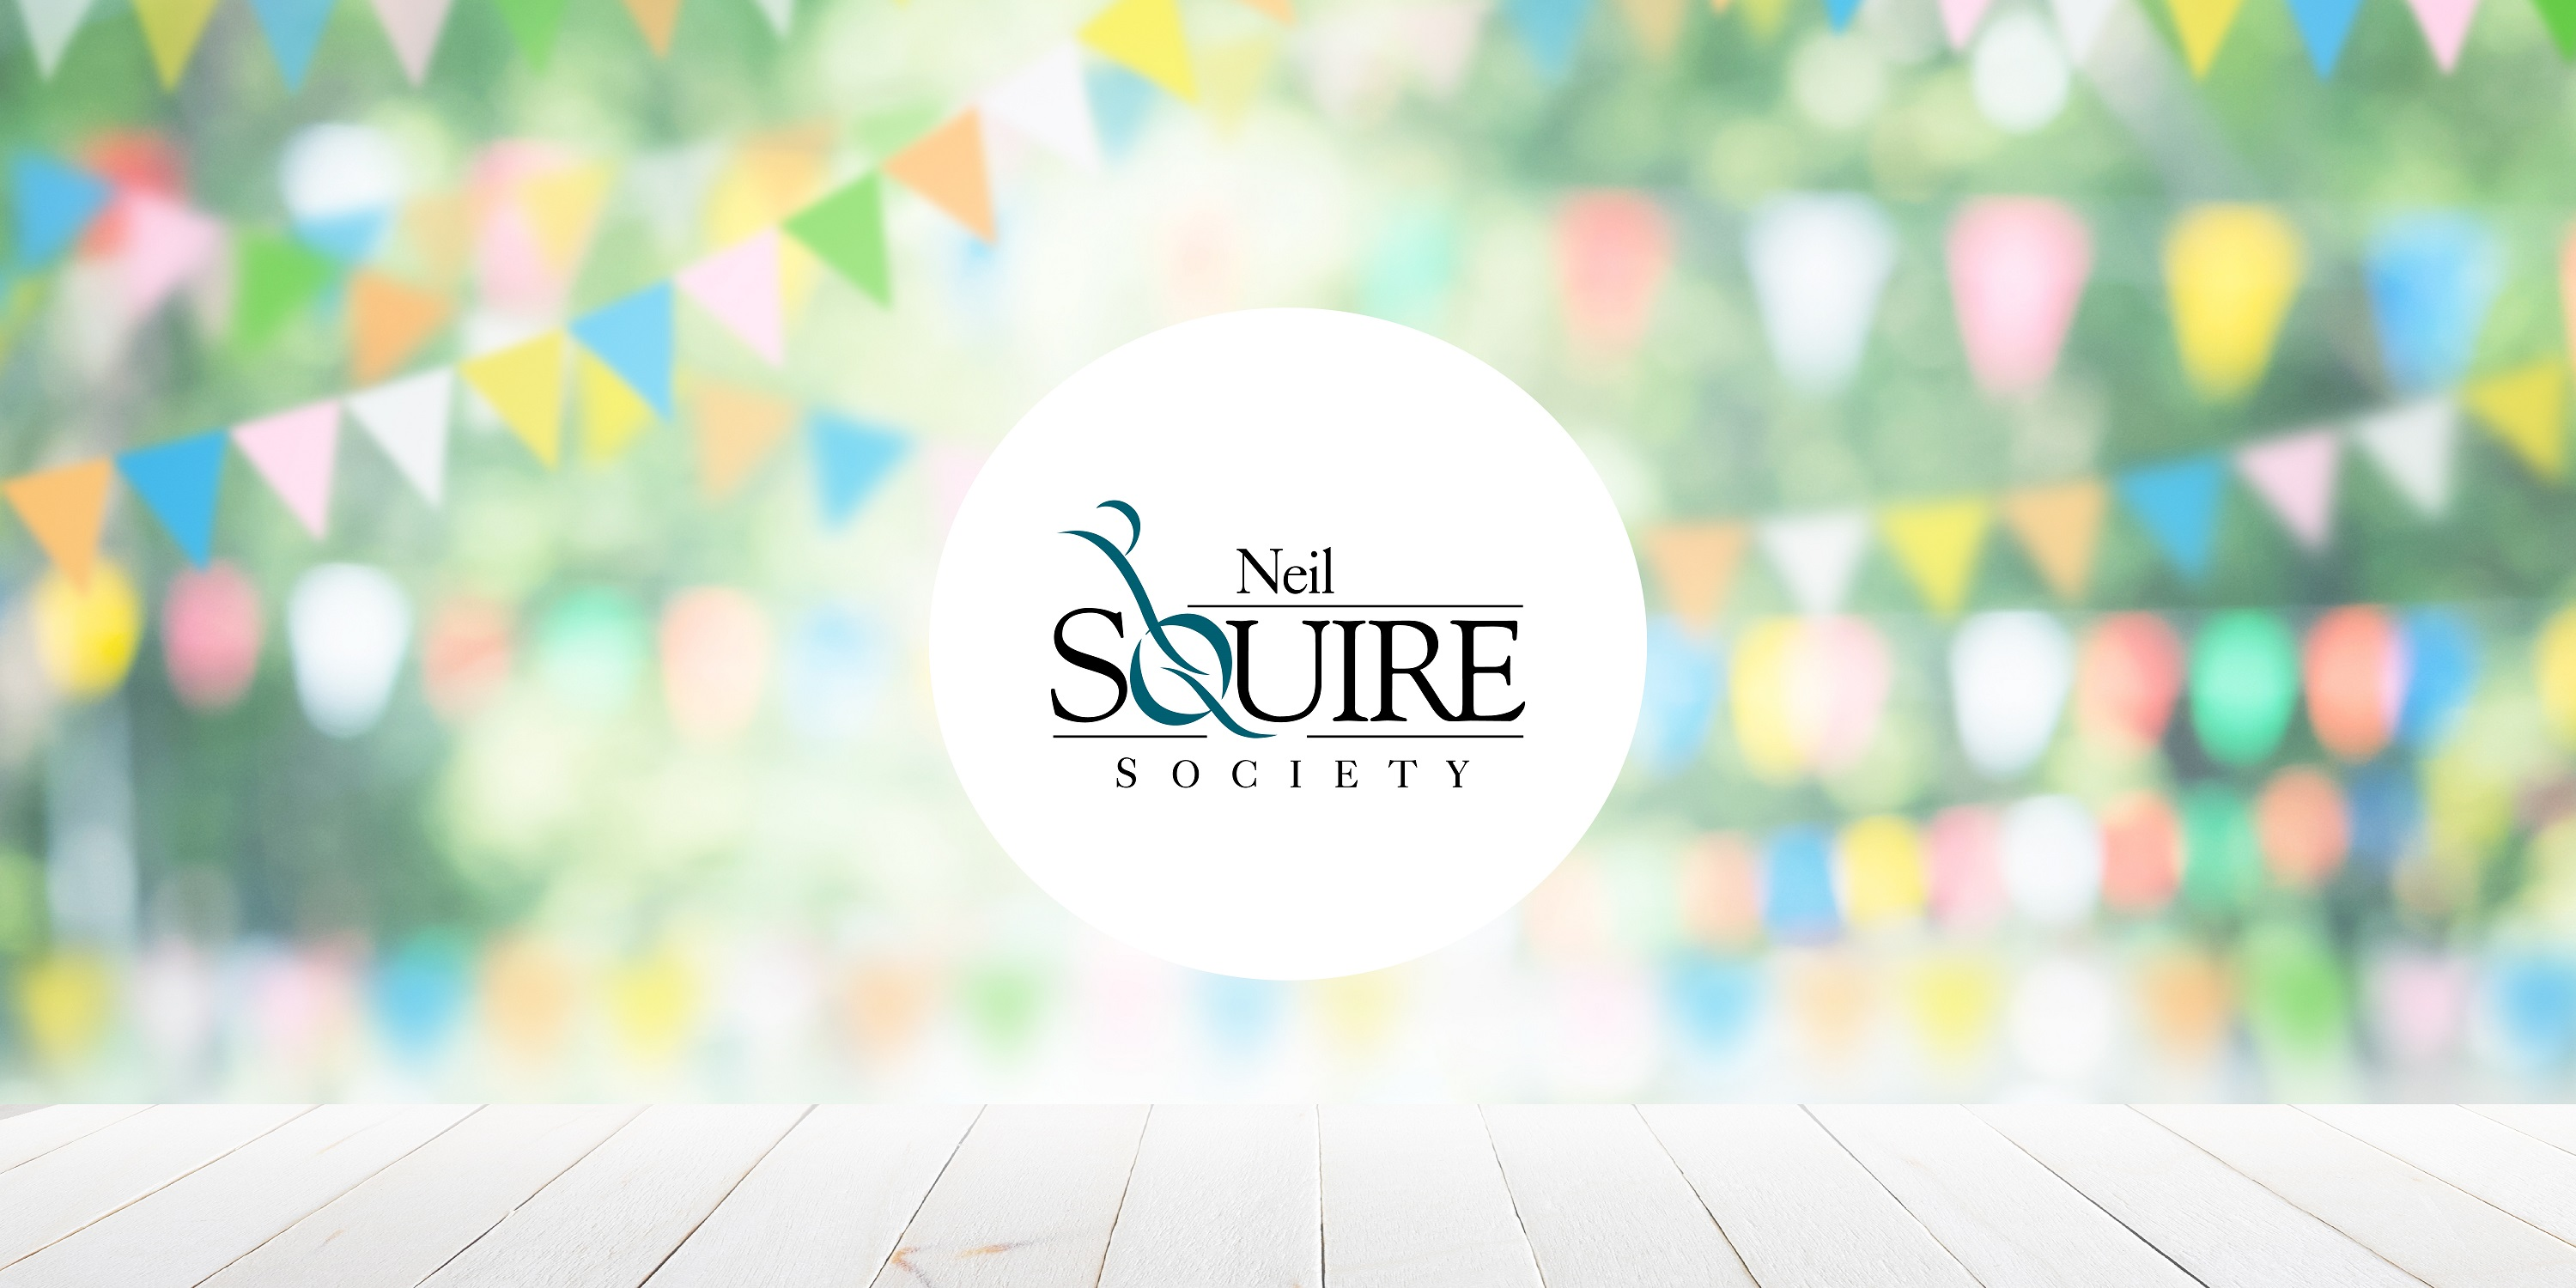 Neil Squire Society logo with party flags